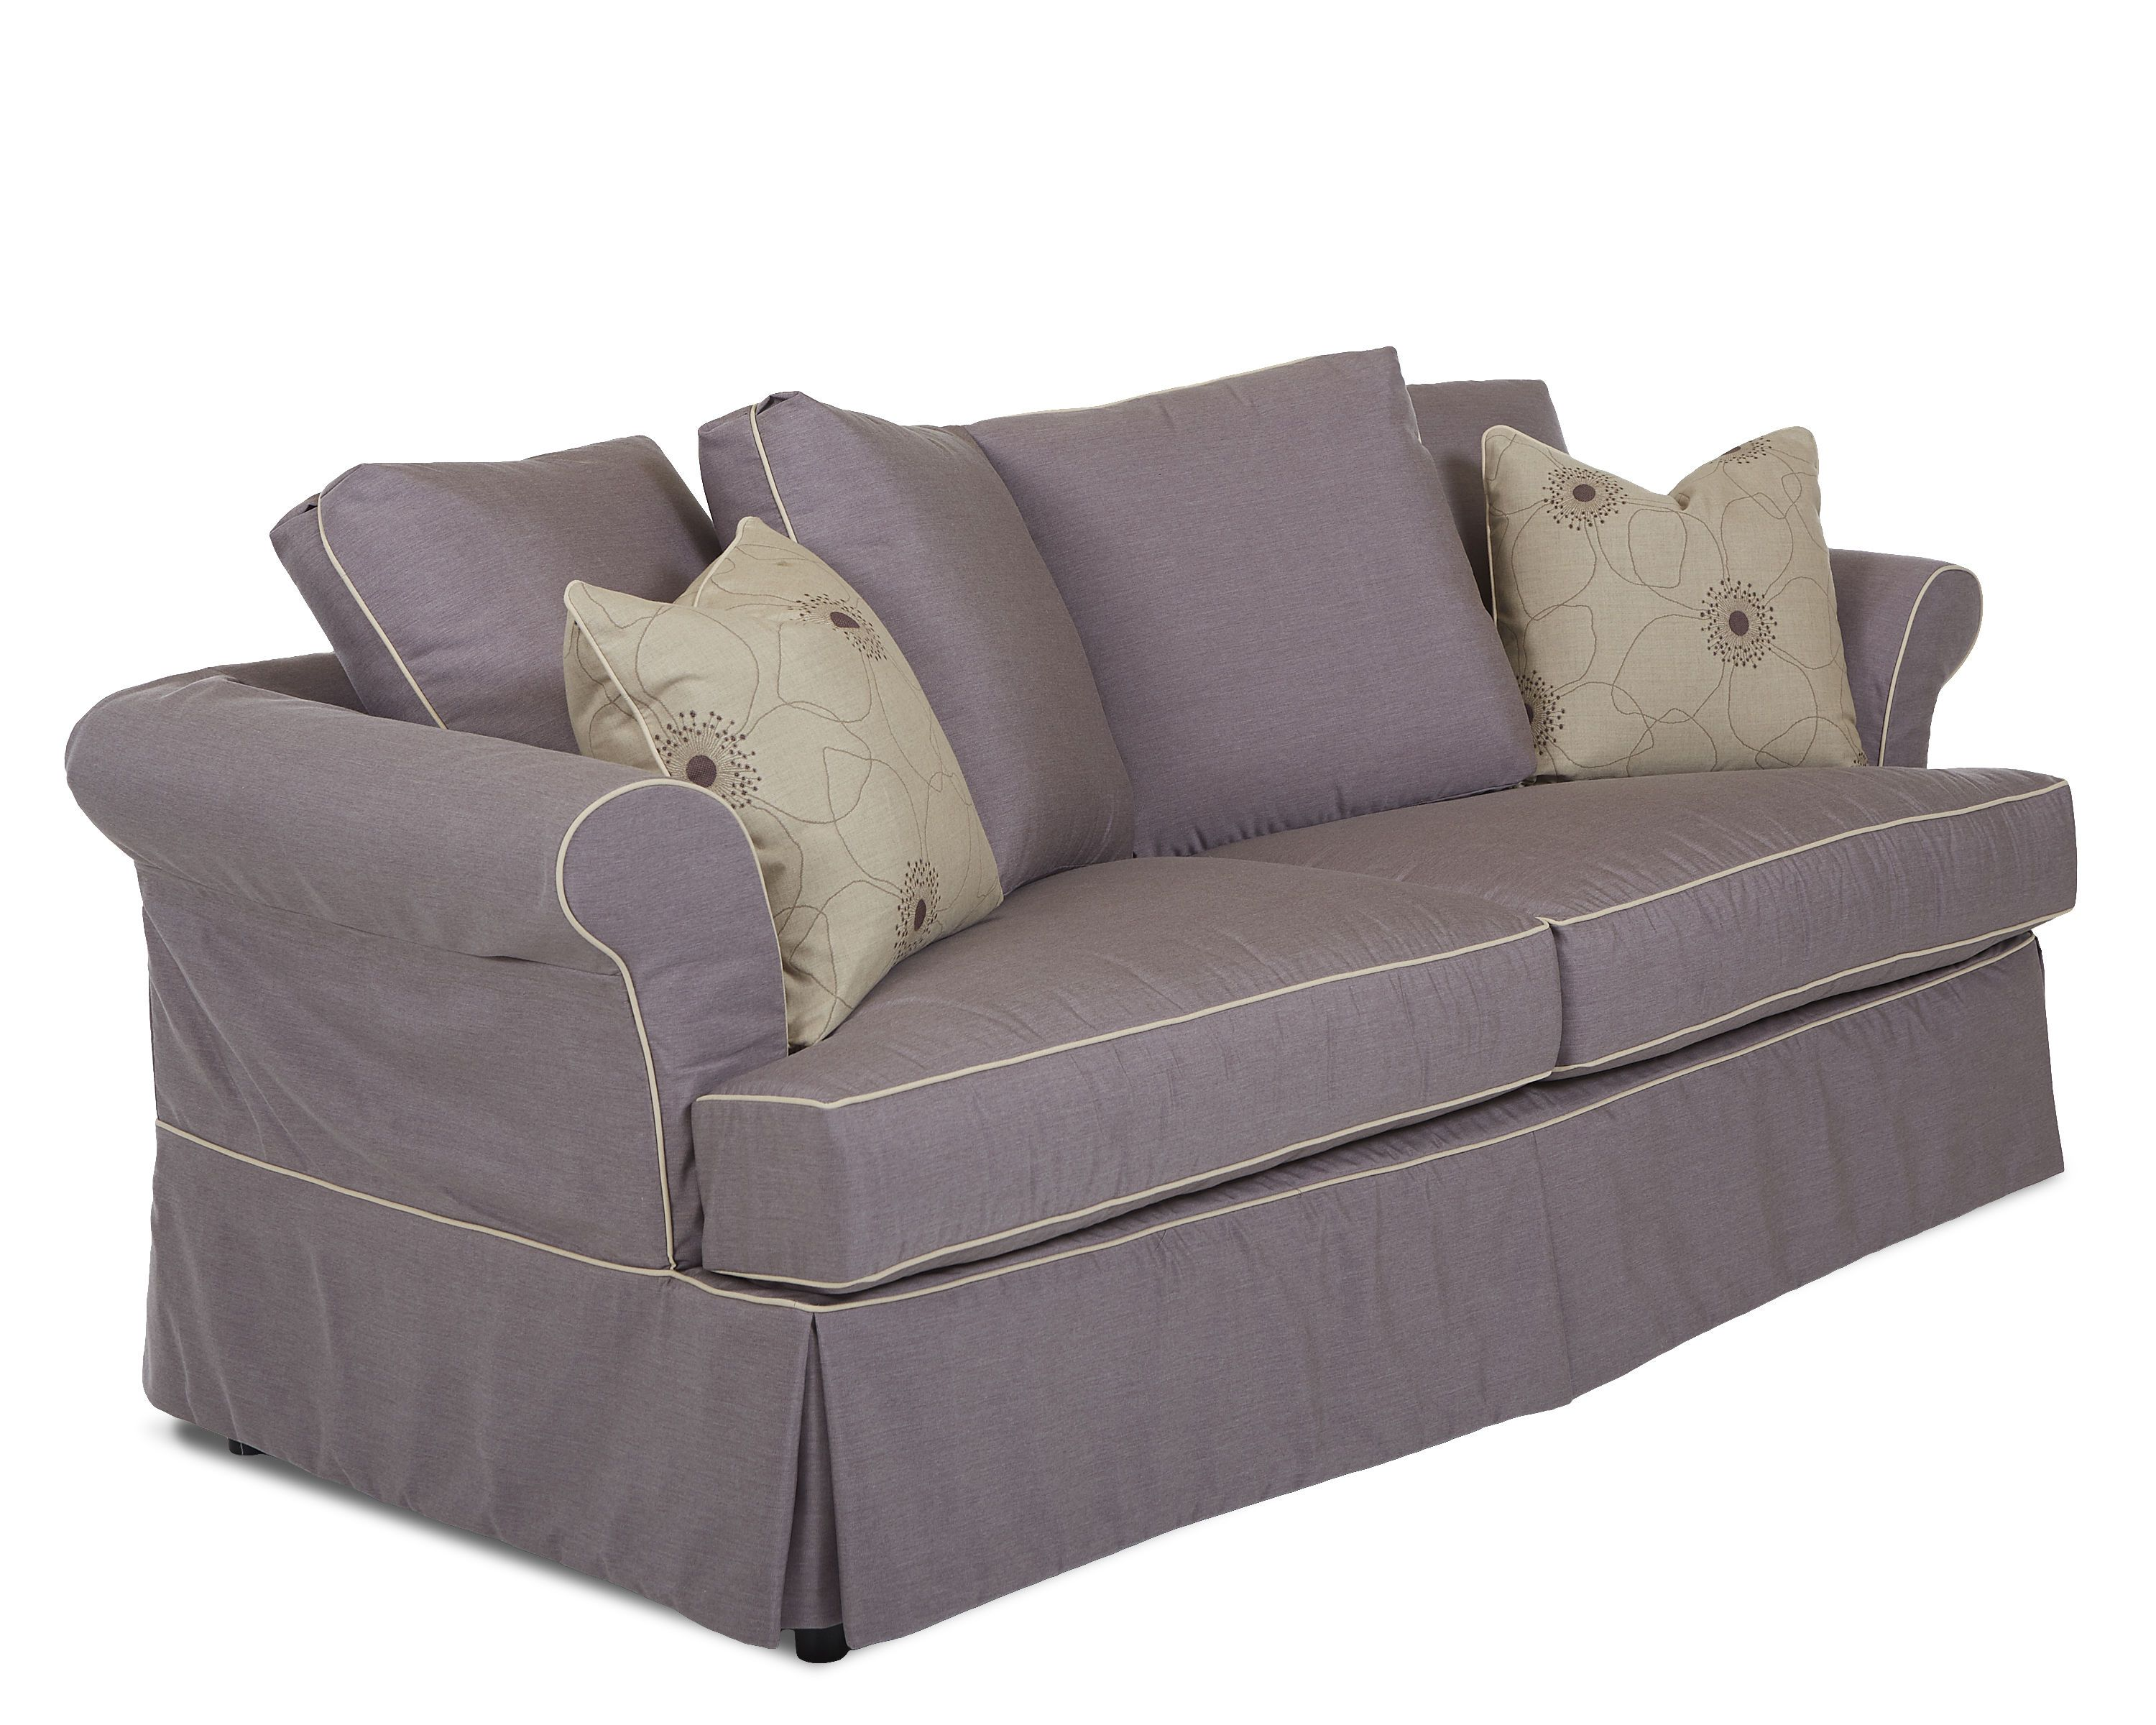 Klaussner Outdoor Outdoor/Patio Moresby Sofa W3000 S   Klaussner Outdoor    Asheboro, NC